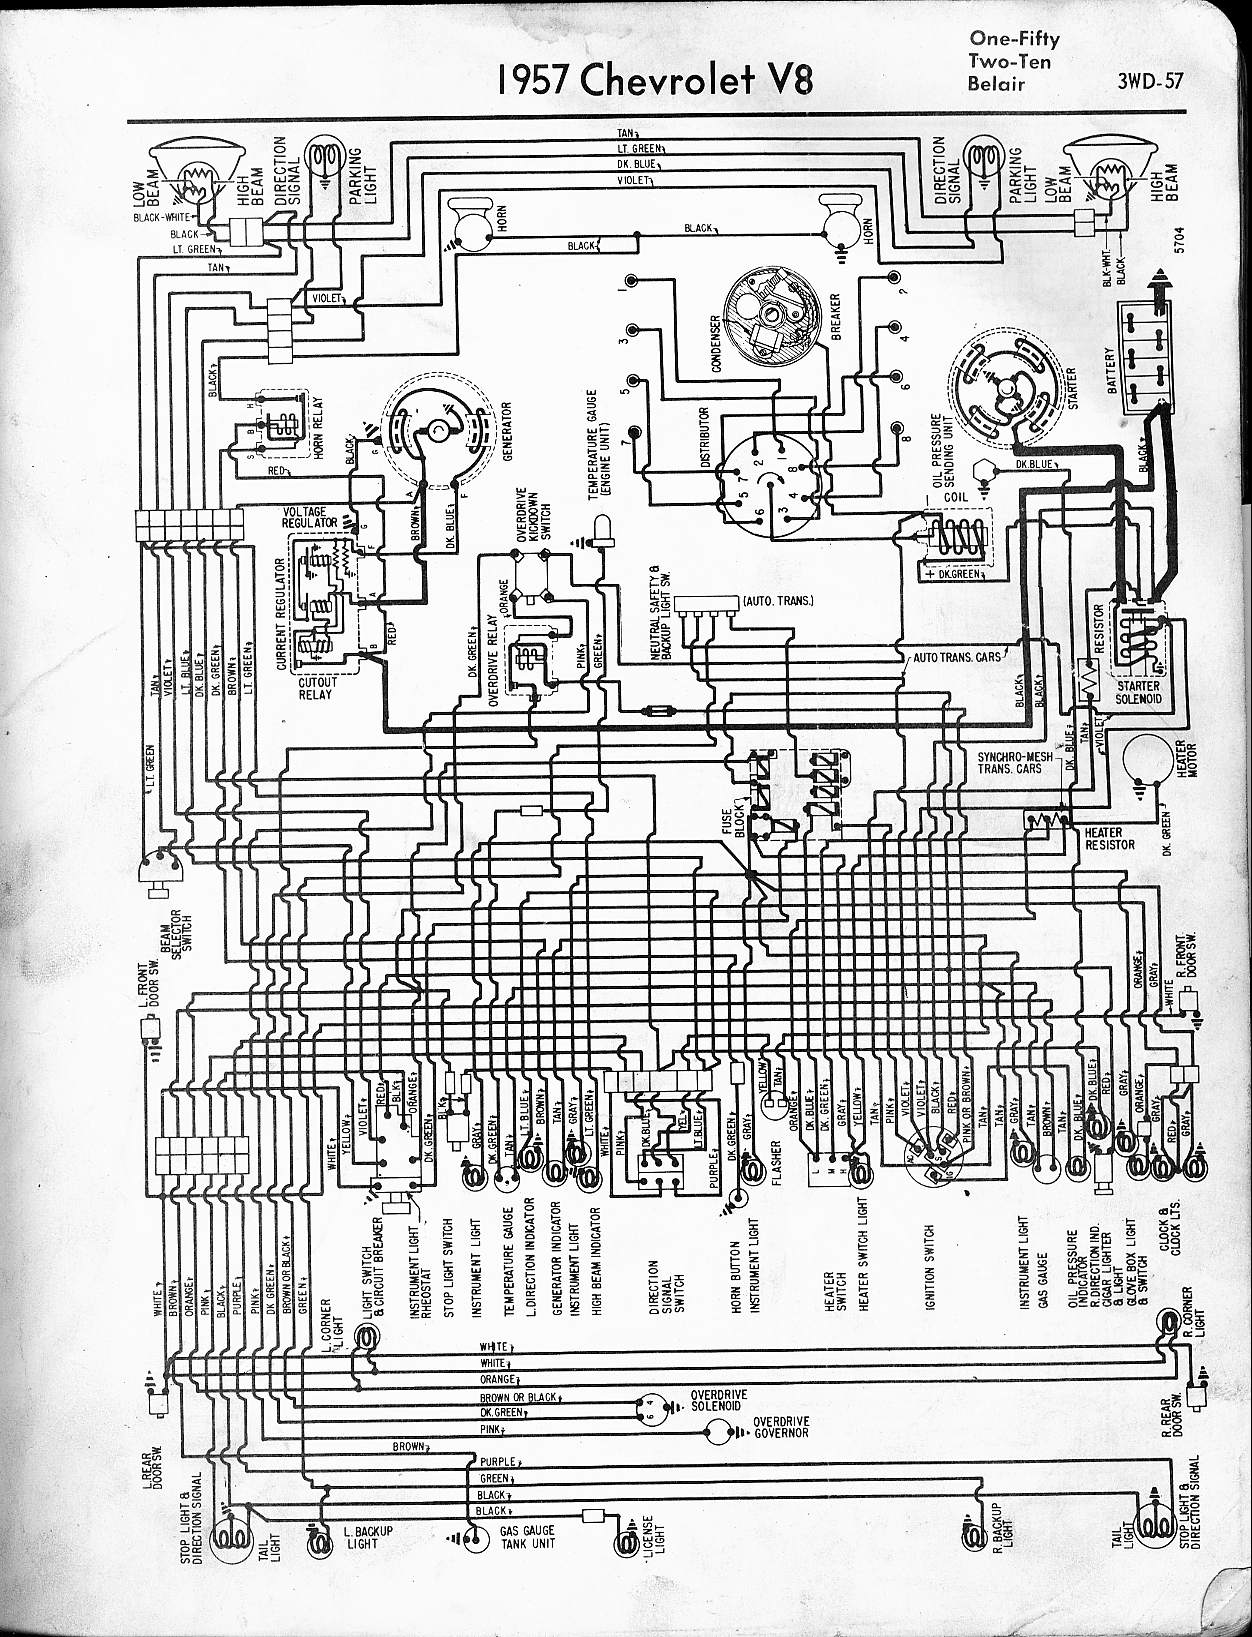 57 chevy wiring diagram 57 wiring diagrams online 1957 corvette 1955 1956 and 1957 chevrolet wiring diagrams